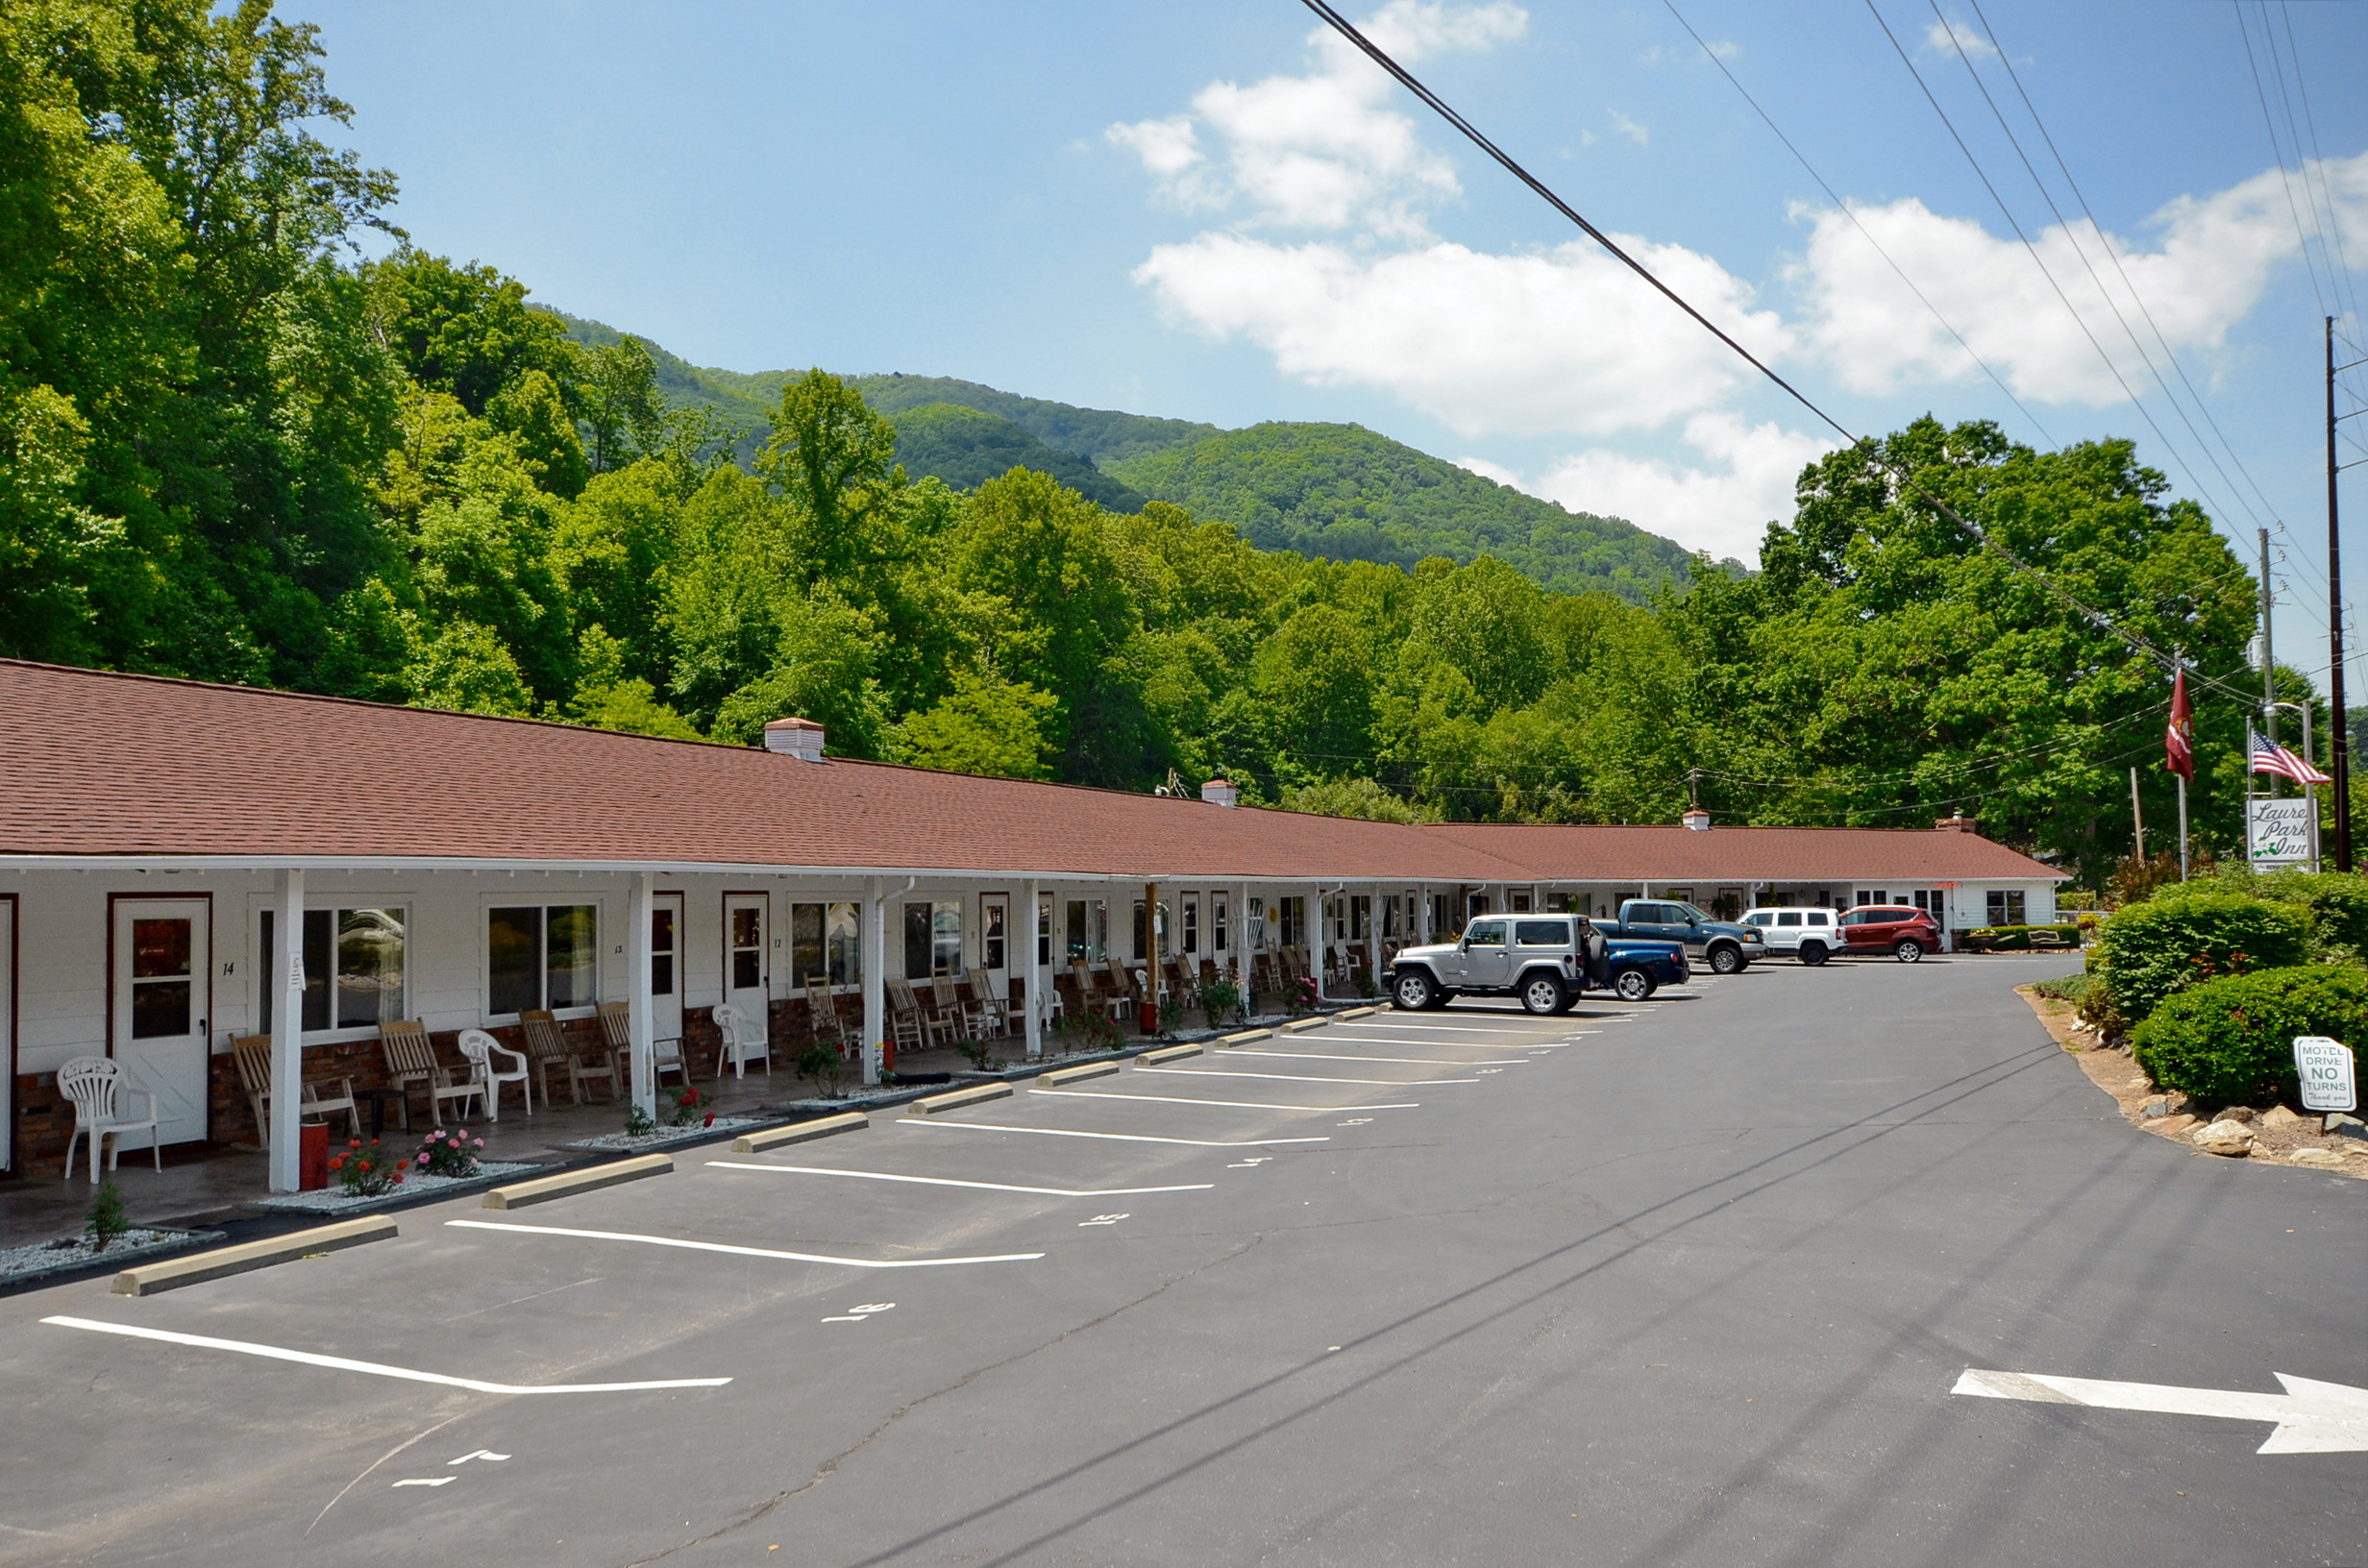 Hotels in Maggie Valley NC